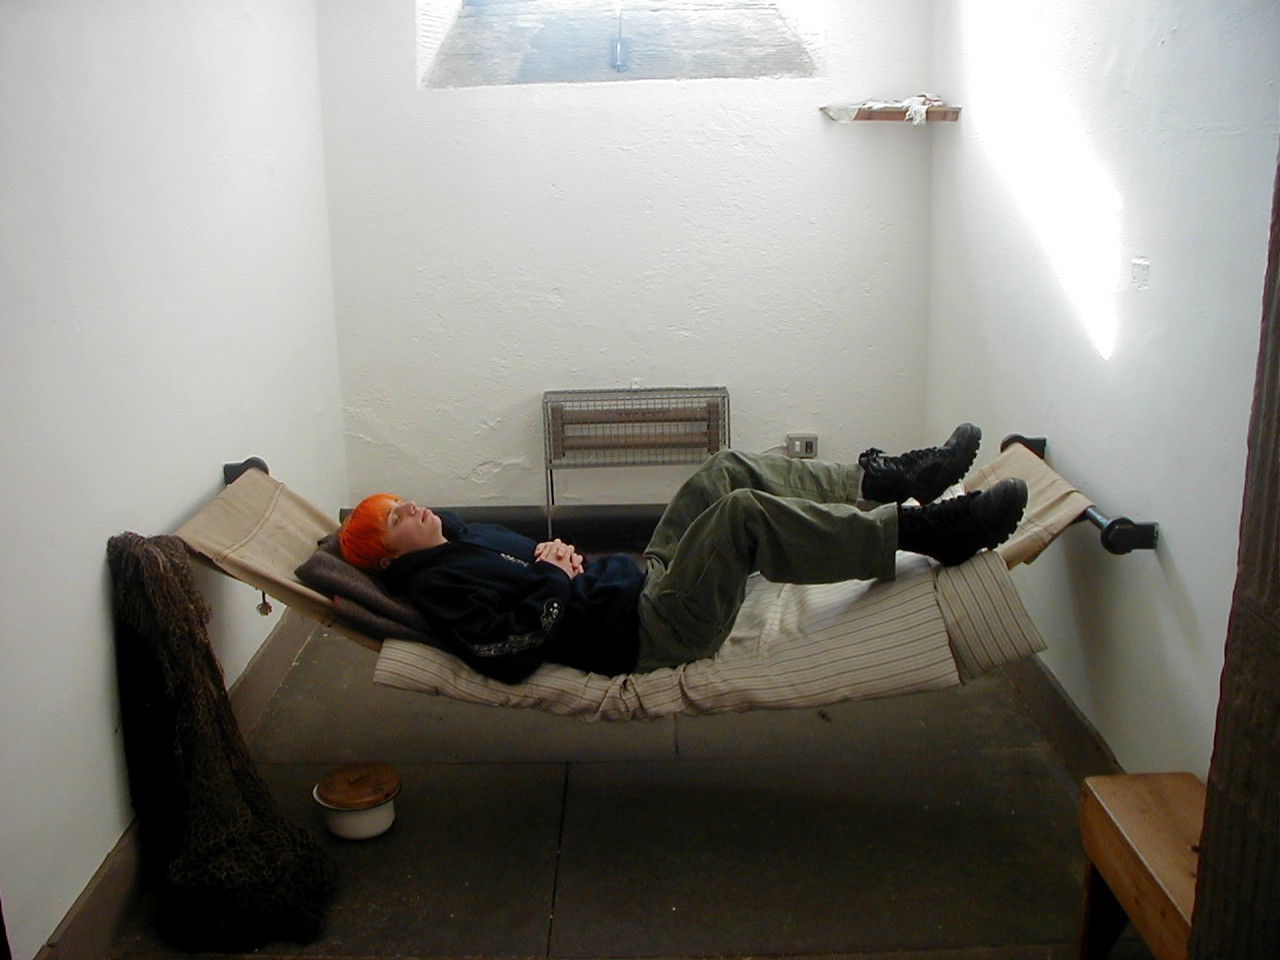 Inverary United Kingdom  city pictures gallery : Interior of Inverary Jail cell Polmont, United Kingdom